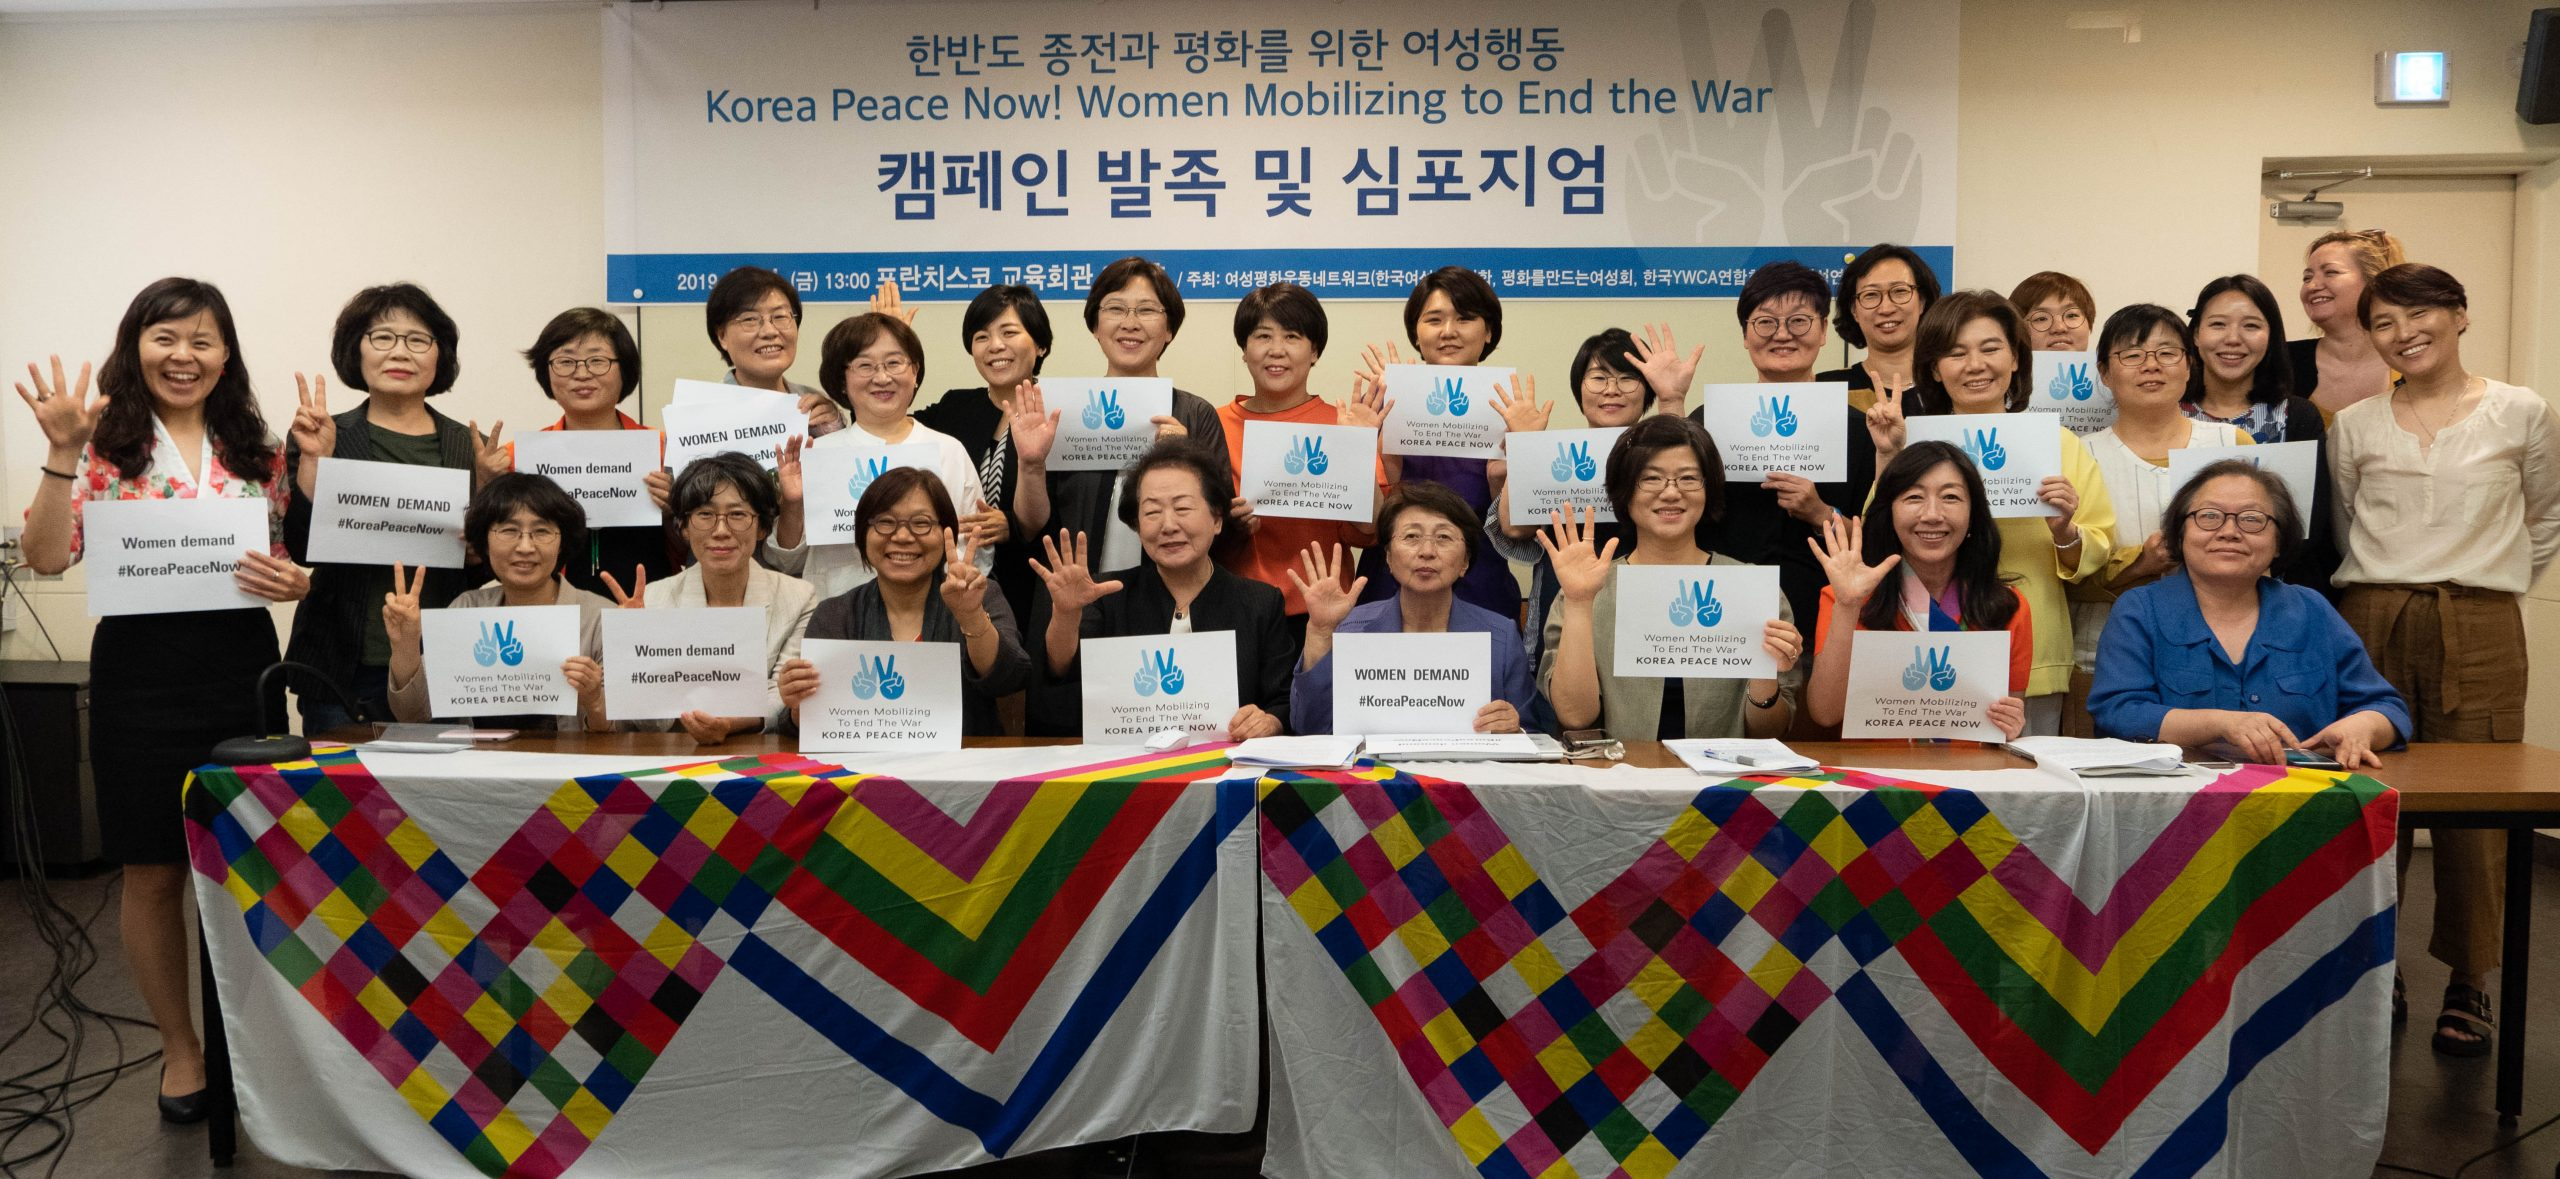 Korean Women's Movement for Peace Wins Women Have Wings Award